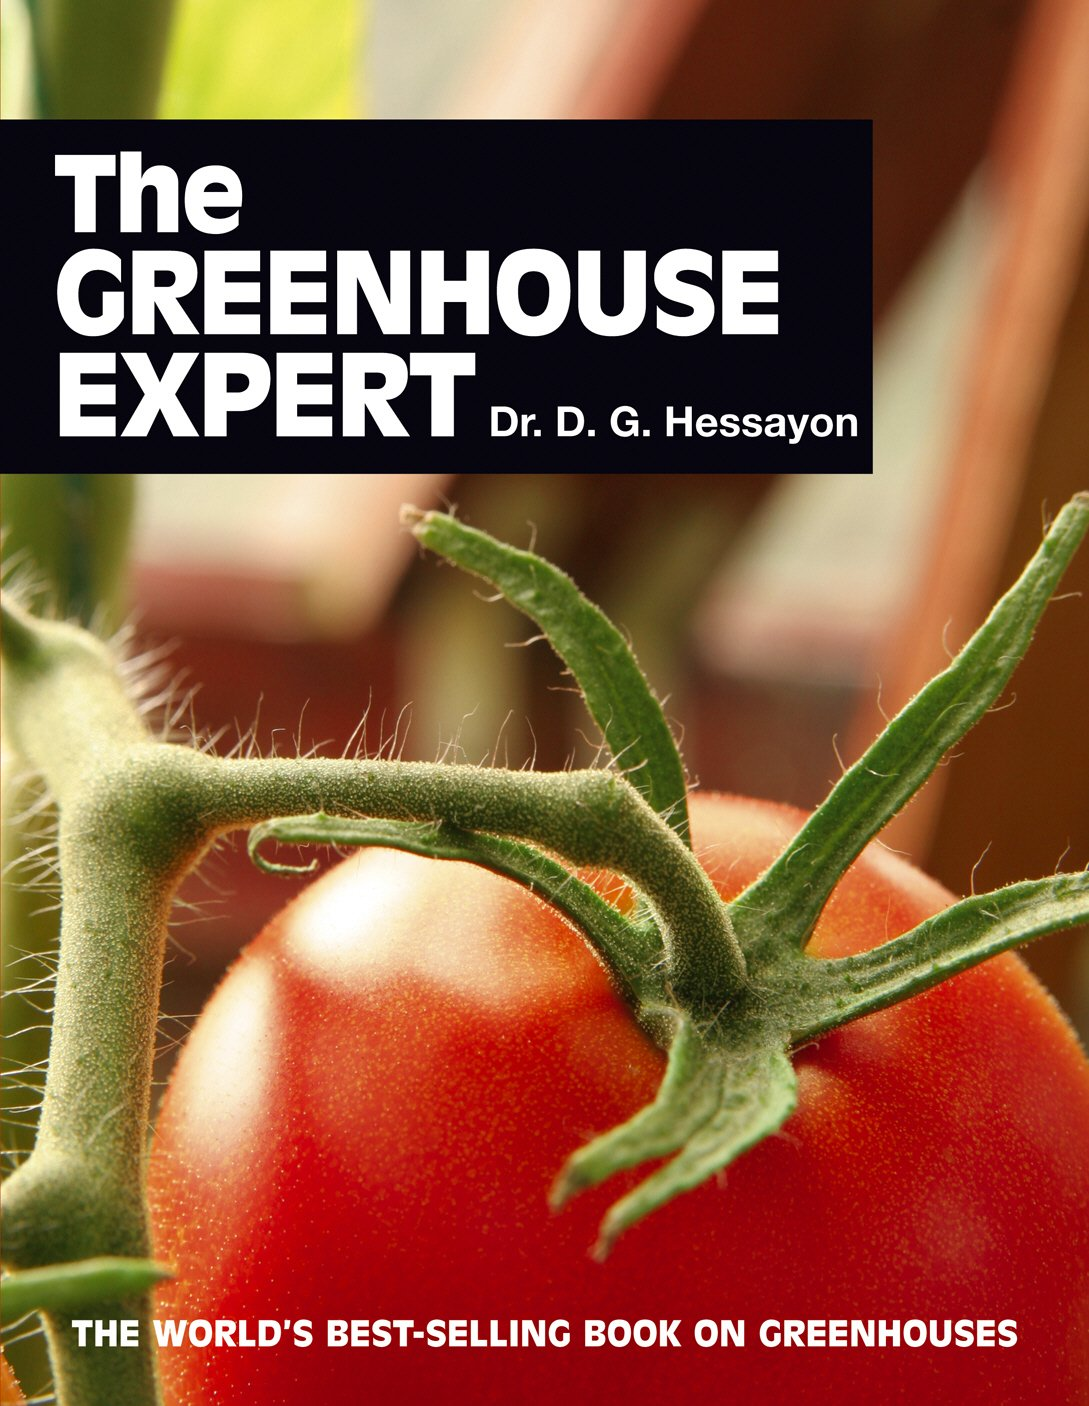 The Greenhouse Expert